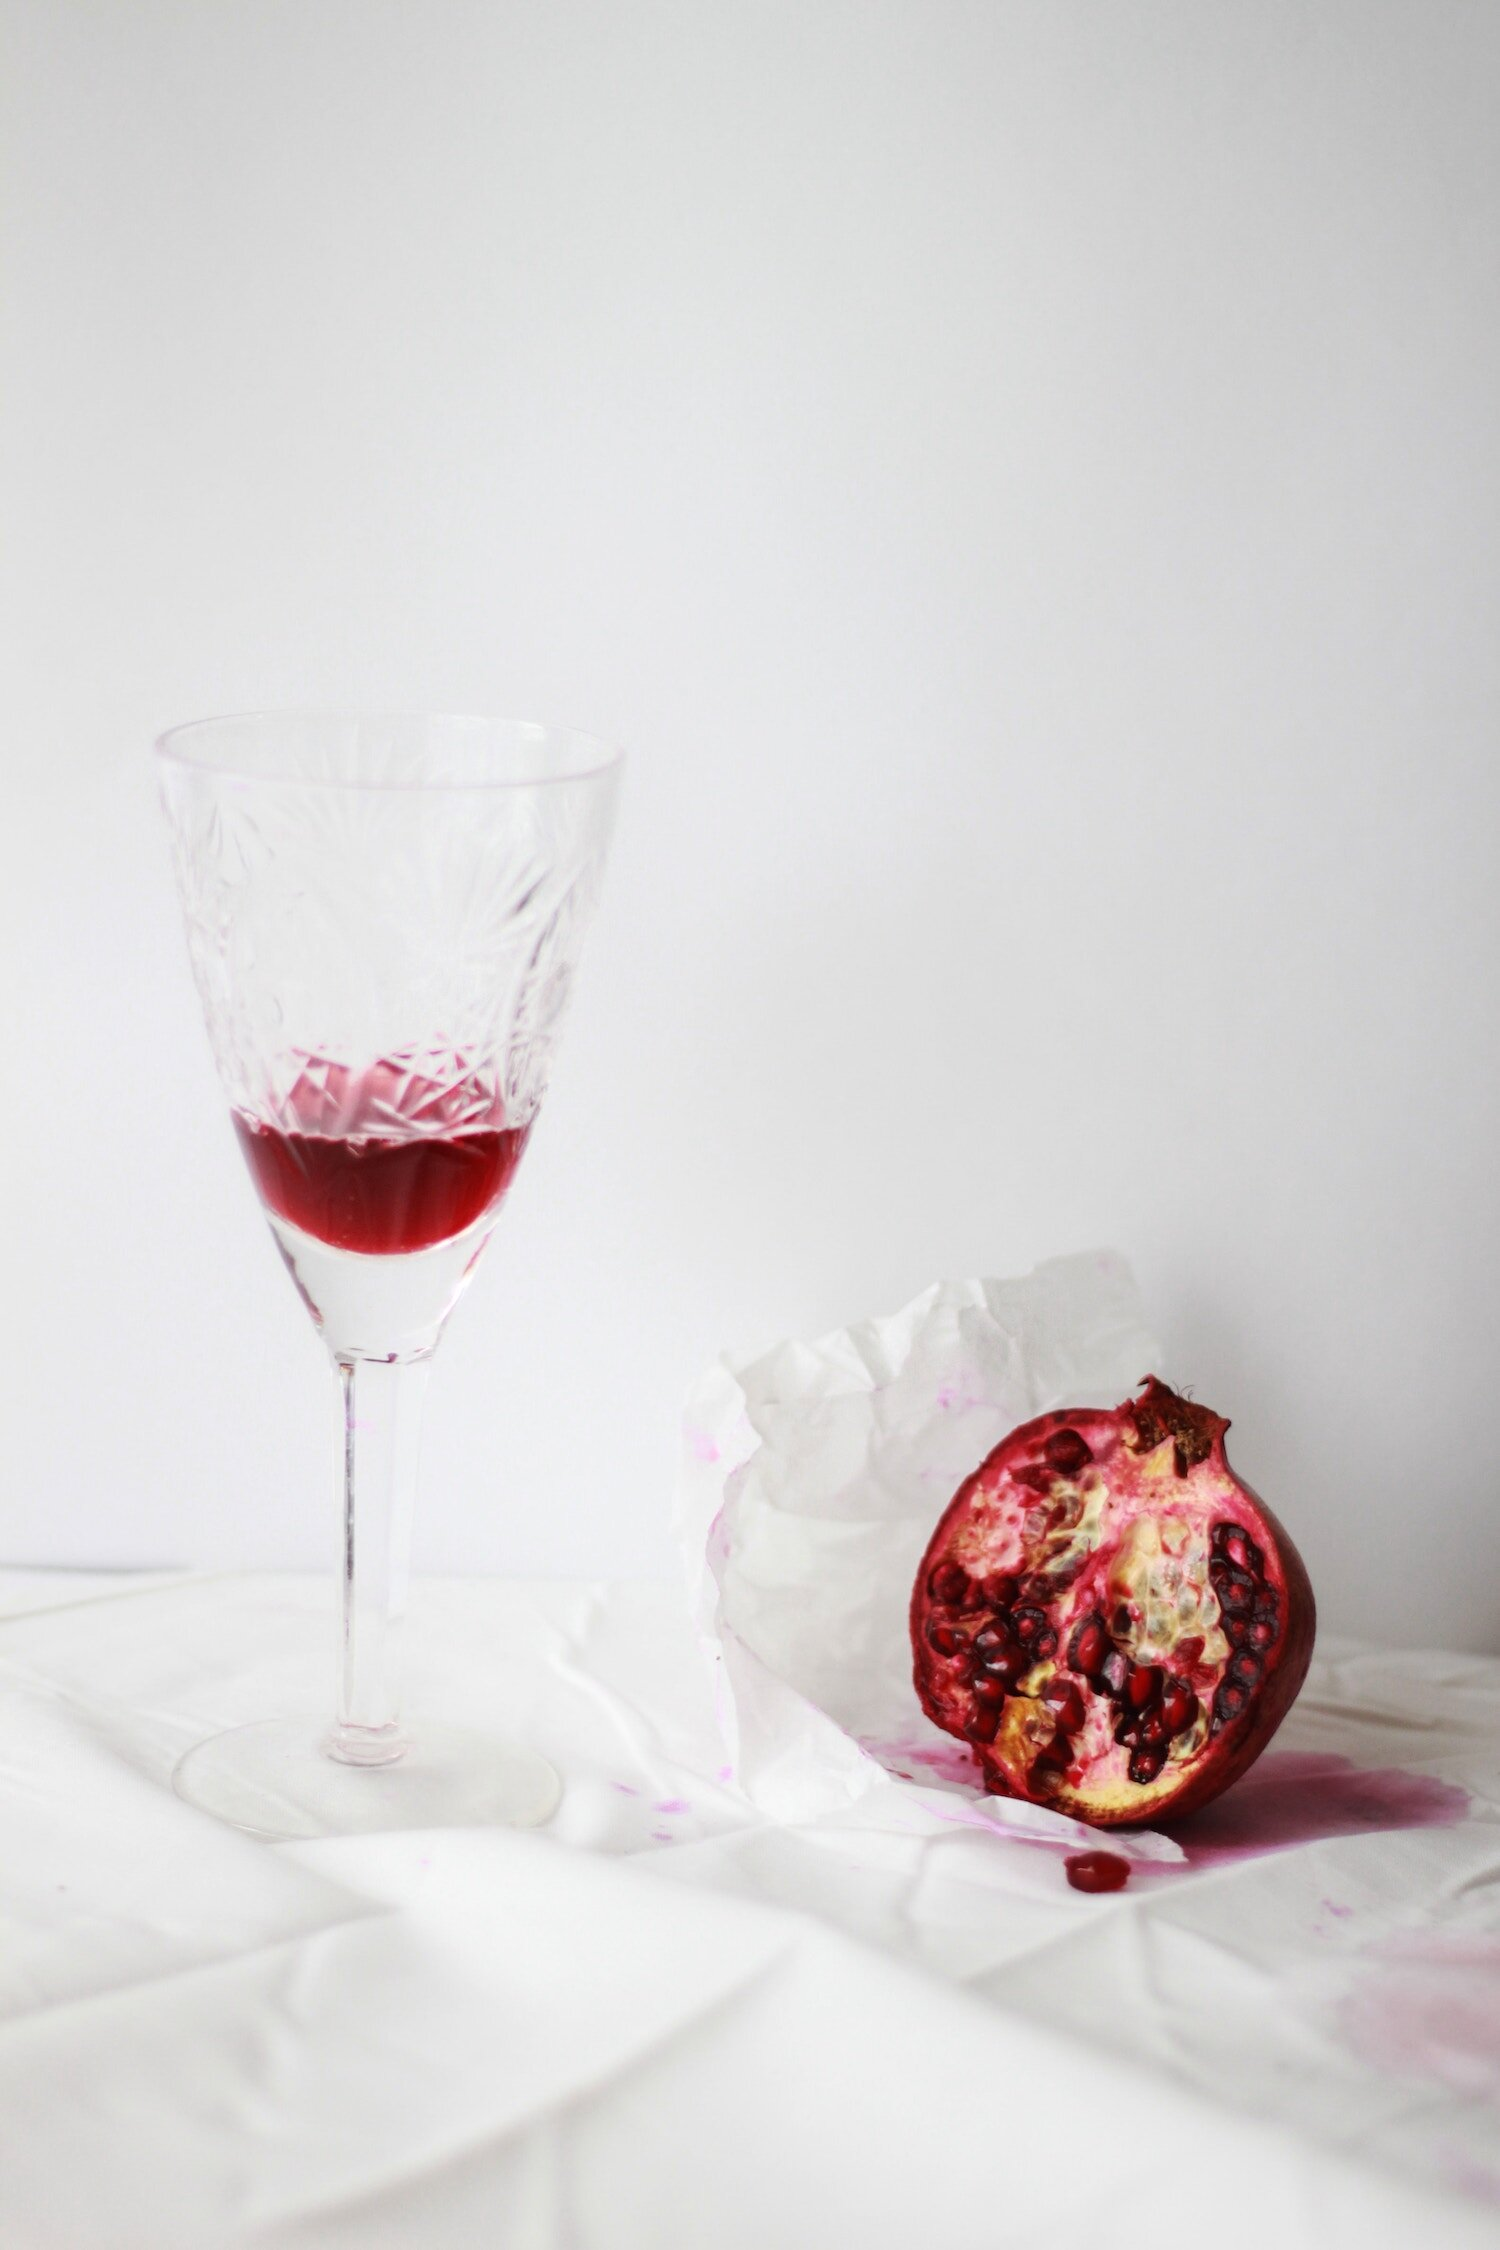 A pomegranate fruit with a crystal glass of juice on a white background